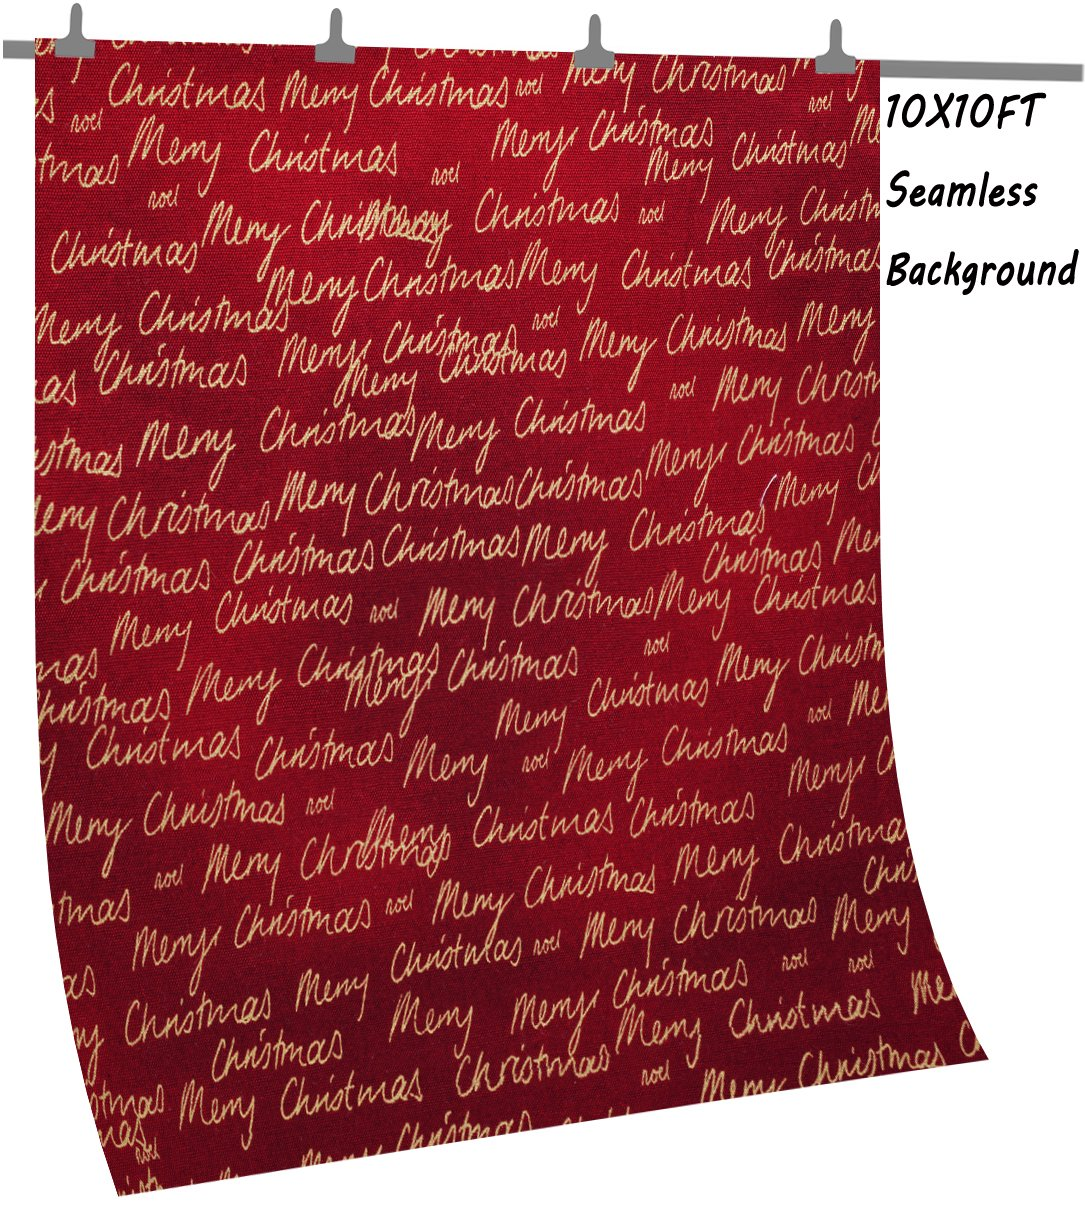 OUYIDA Christmas Theme 10X10FT Seamless CP Pictorial Cloth Photography Background Computer-Printed Vinyl Backdrop SD157 by OUYIDA (Image #2)